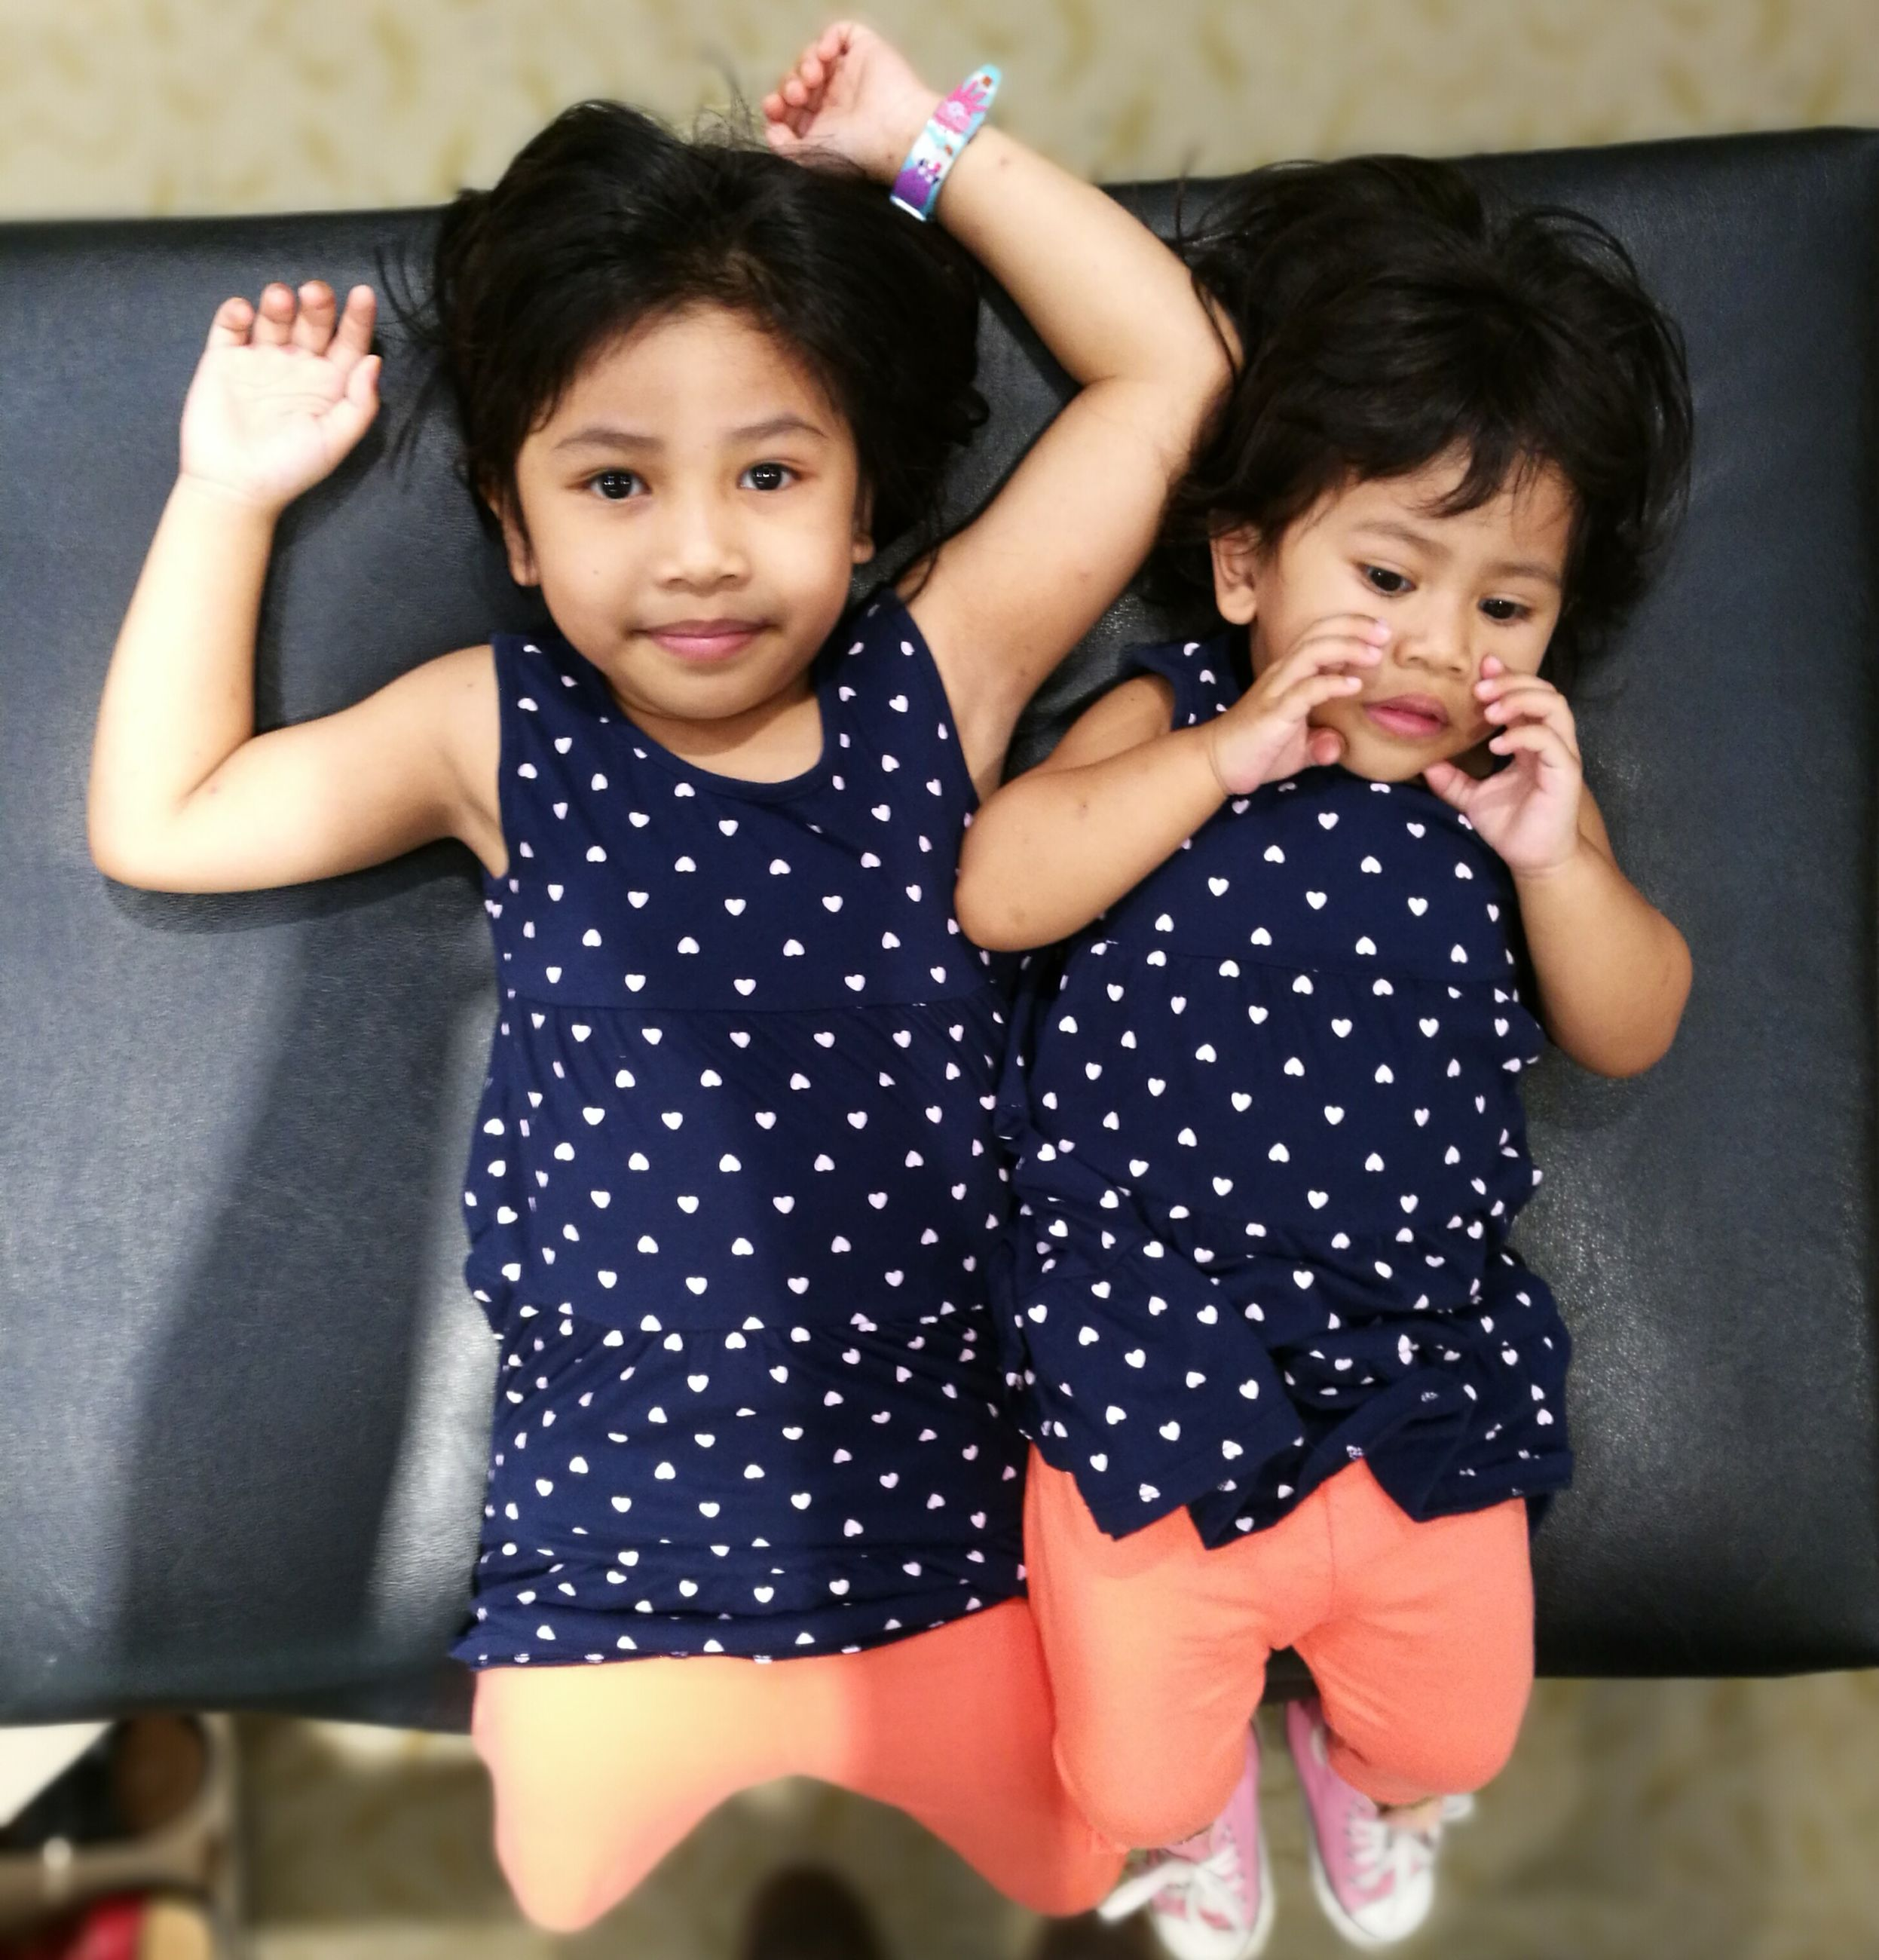 childhood, child, girls, cute, two people, children only, innocence, portrait, looking at camera, lifestyles, friendship, togetherness, cheerful, smiling, bonding, people, indoors, real people, close-up, day